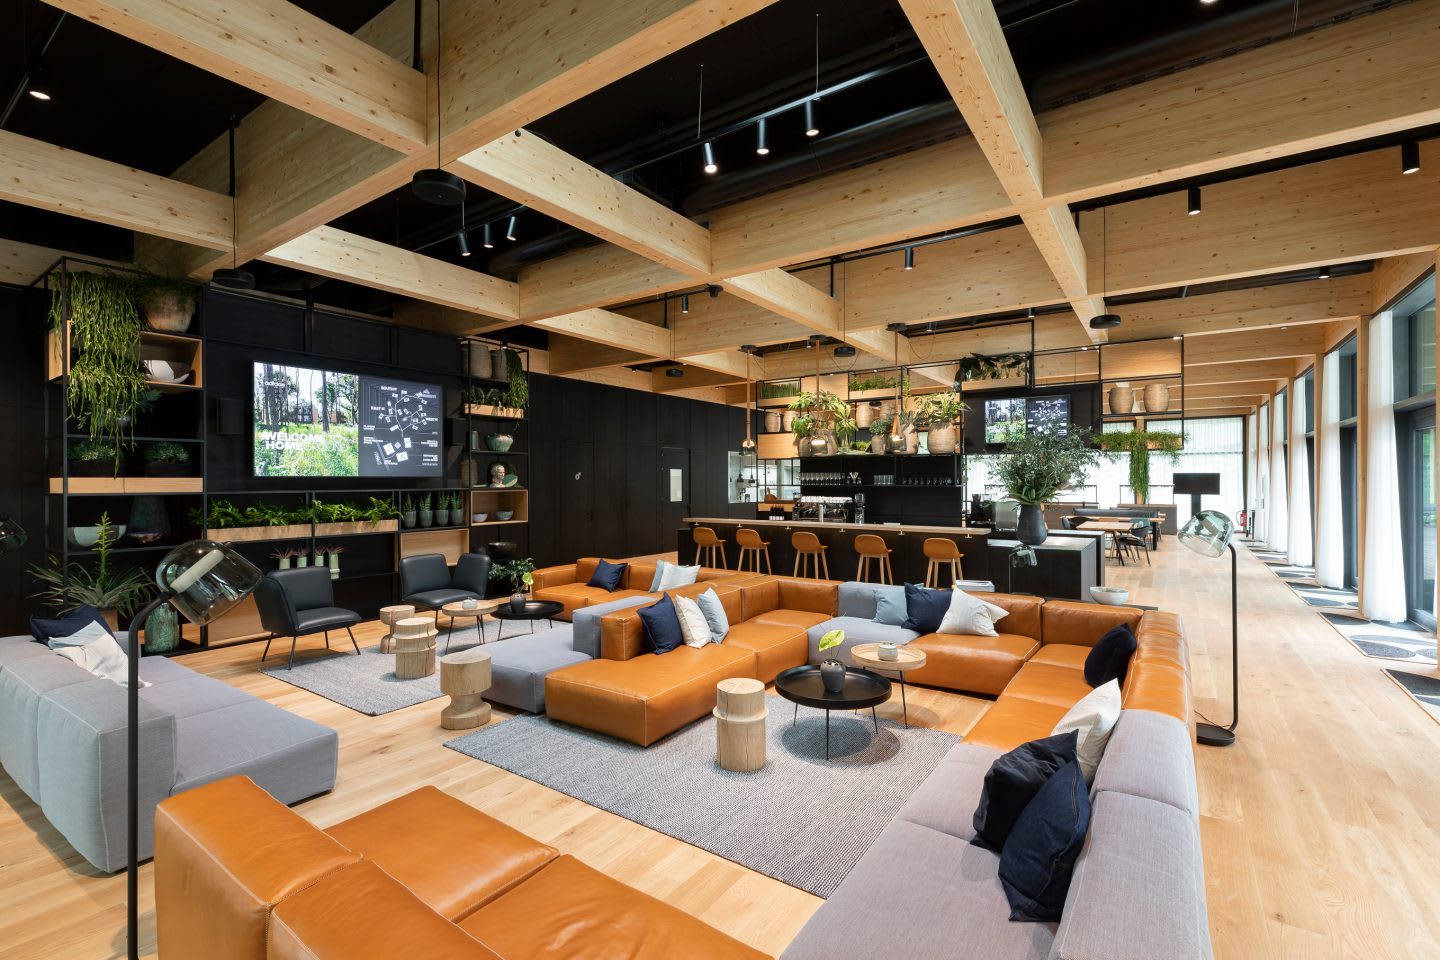 The indoor team area with lounge furniture, a bar and a TV inside the German national football teams base camp. Home Ground, football, teambuilding, adidas headquarters, GamePlan A.